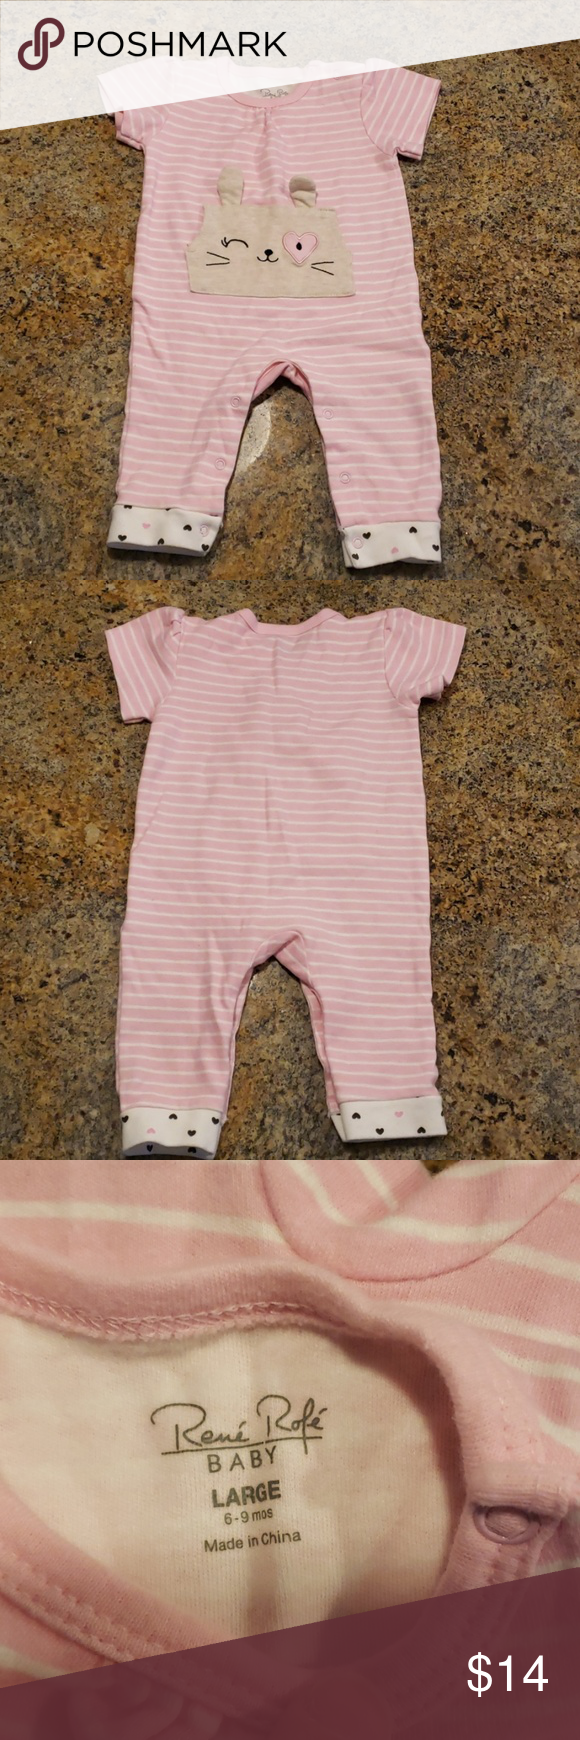 44e5398f6 Rene Rofe One Piece Outfit with Matching Bib Rene Rofe One Piece Outfit  with Matching Bib